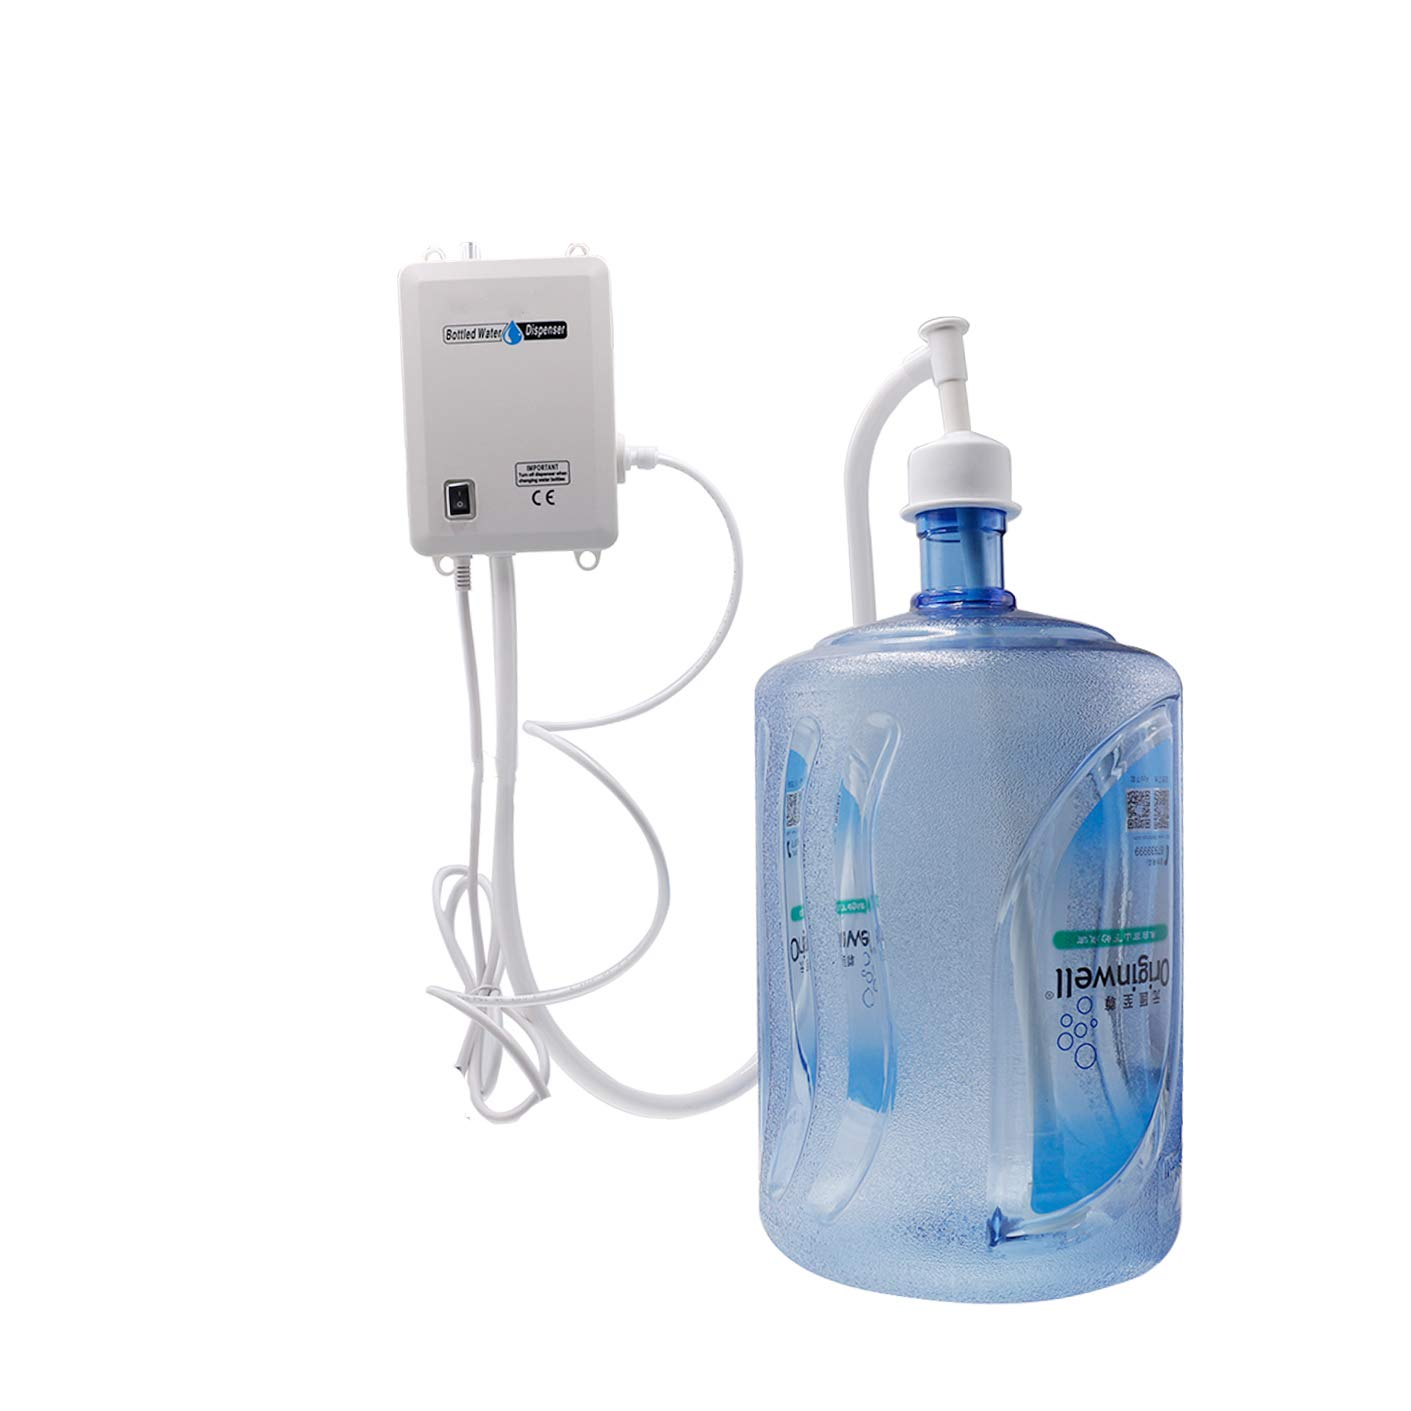 Bottled Water System Water Pump Bottle Water Electric Dispensing Pump System with Single Inlet 110V US Plug for Coffee Brewer Ice-Make (with speed control)